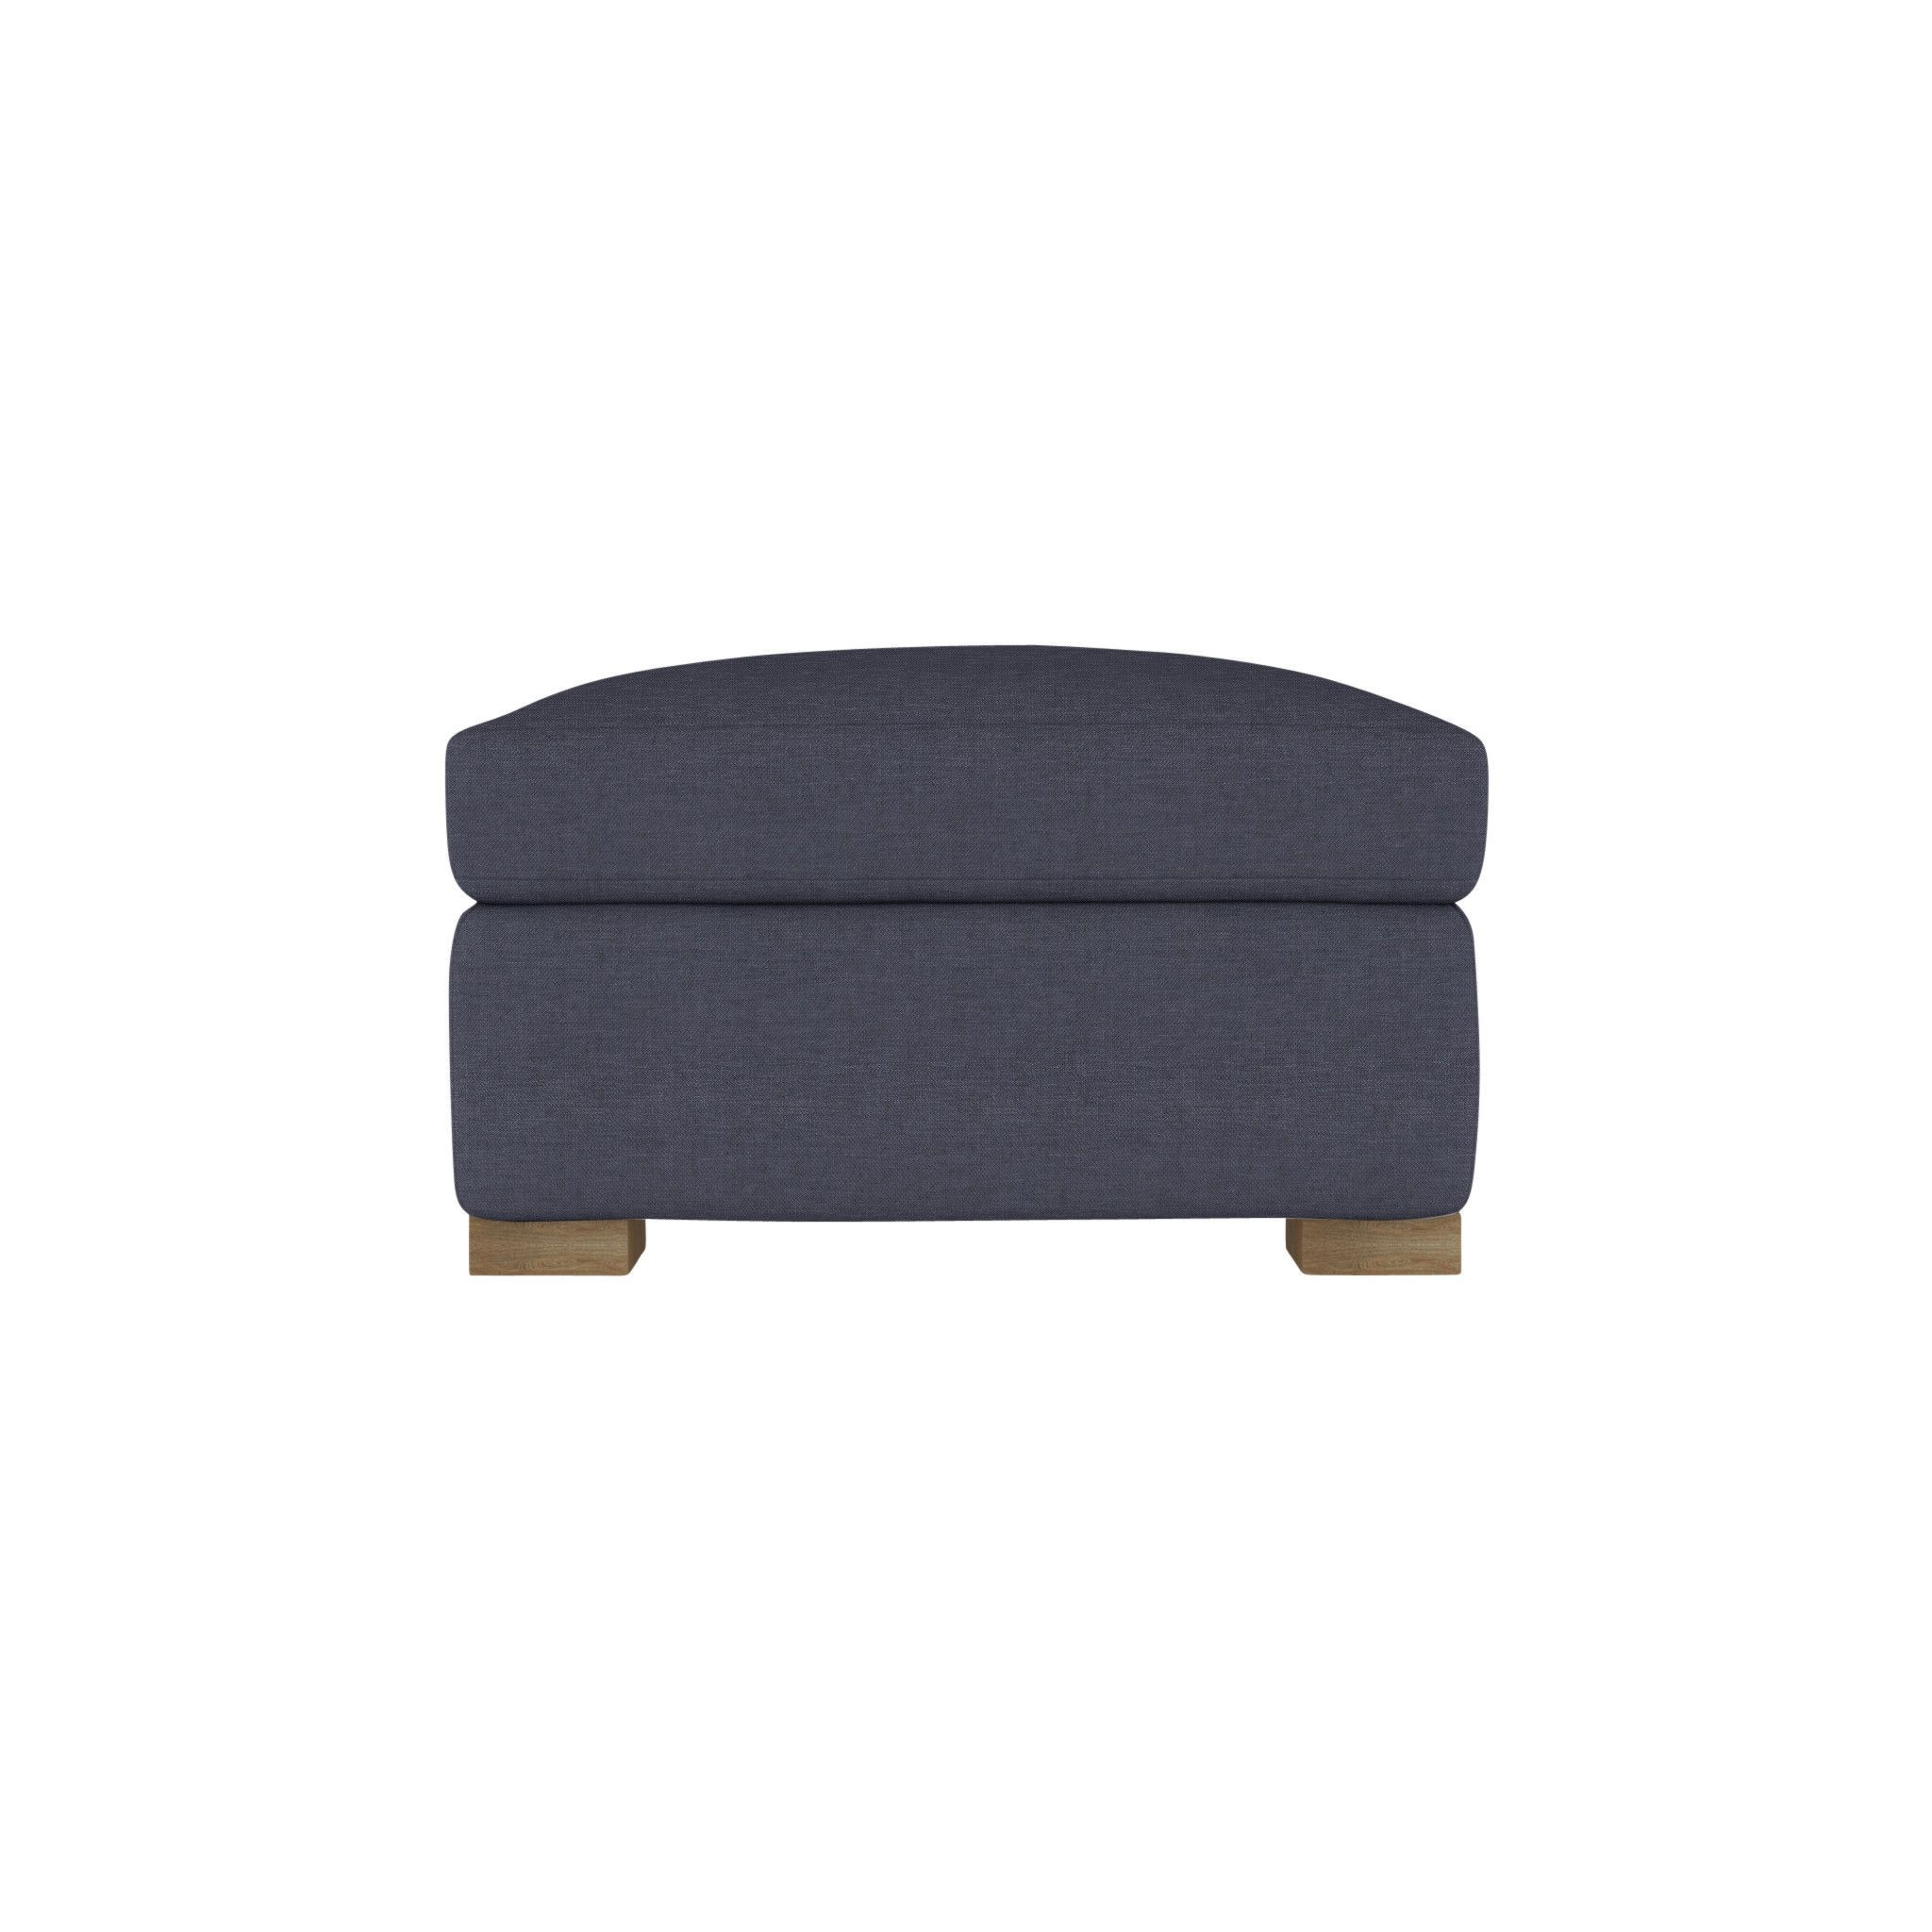 Horatio ottoman bluebell chambray ottomans and products